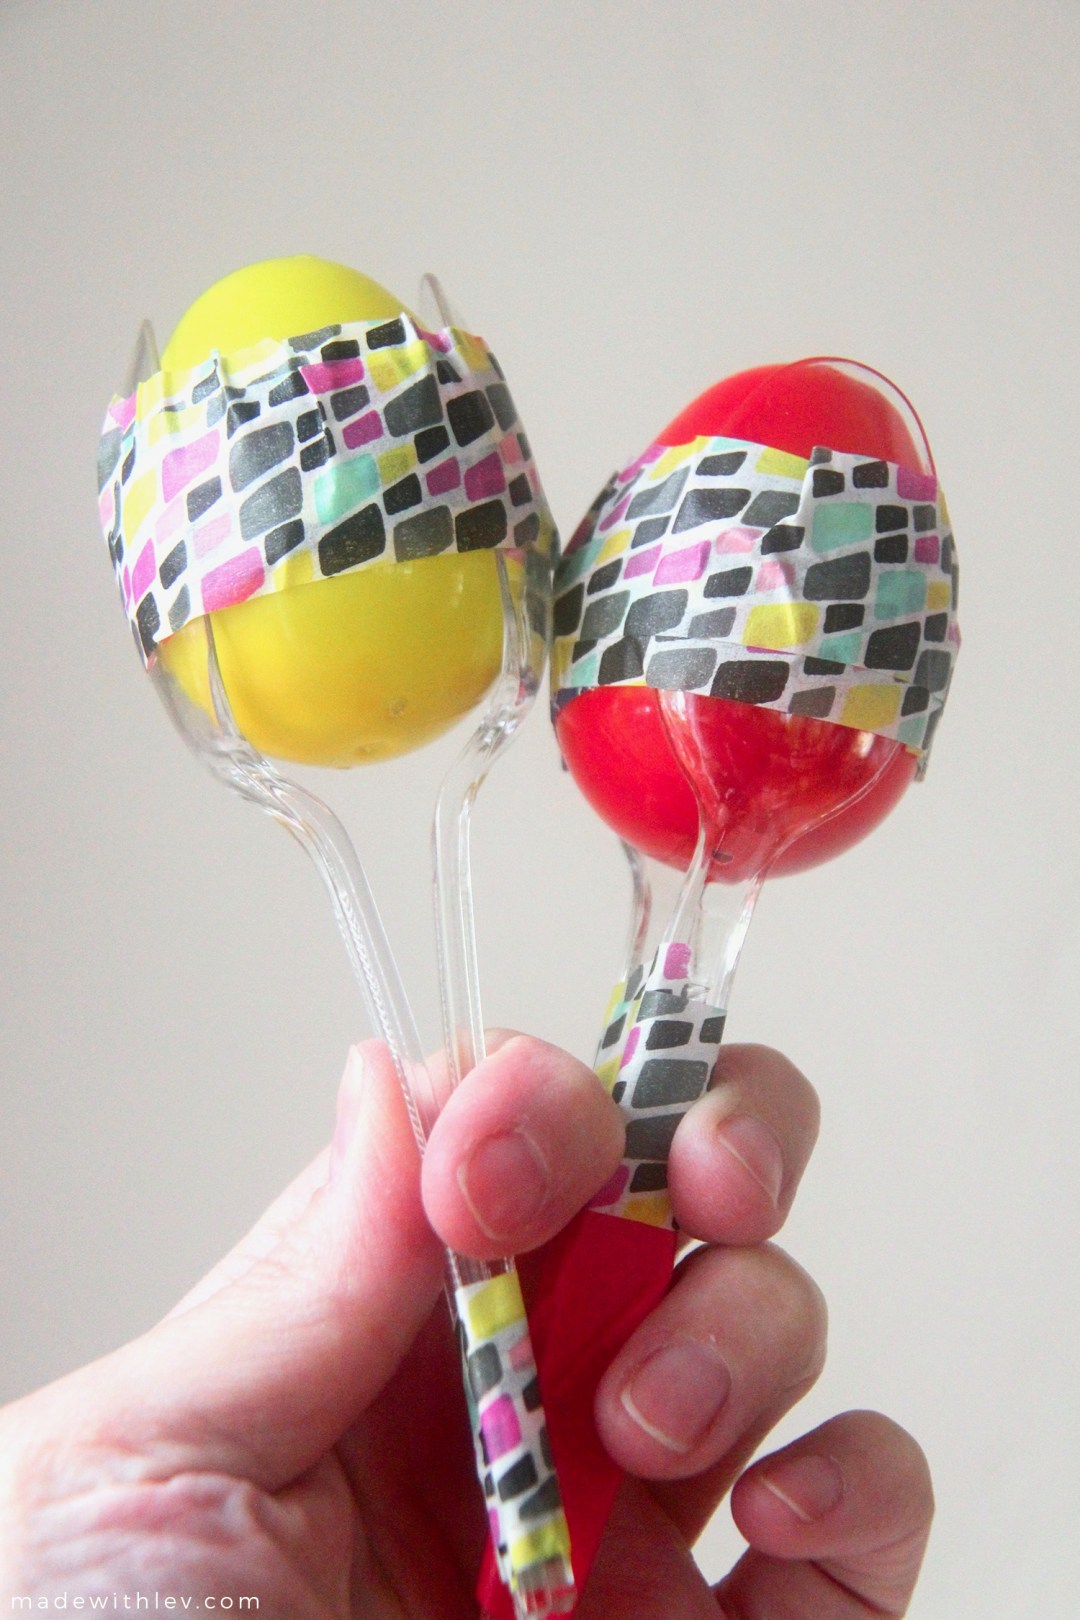 Plastic Egg Maracas for Cinco de Mayo |This project involves minimal supplies and (hopefully) ones that you have in your house already. It's also a really great project to have in your back pocket post-Easter since plastic eggs are seriously on sale.#musicalinstruments #toddlercrafts #sensoryplay #noisemakers #maracas #cincodemayo #partyfavor #partycraft #colorfulcraft #plasticeggs #kidscrafts #familycrafts #preschoolcraft